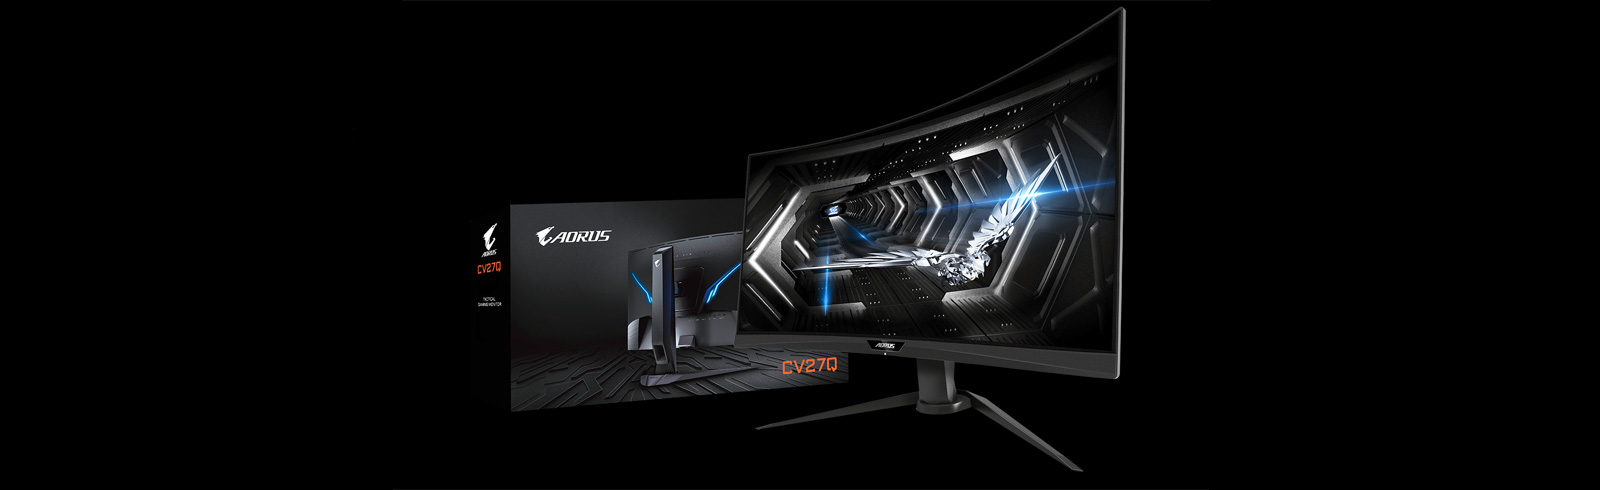 Gigabyte further expands the AORUS lineup of gaming monitors with the AORUS CV27Q